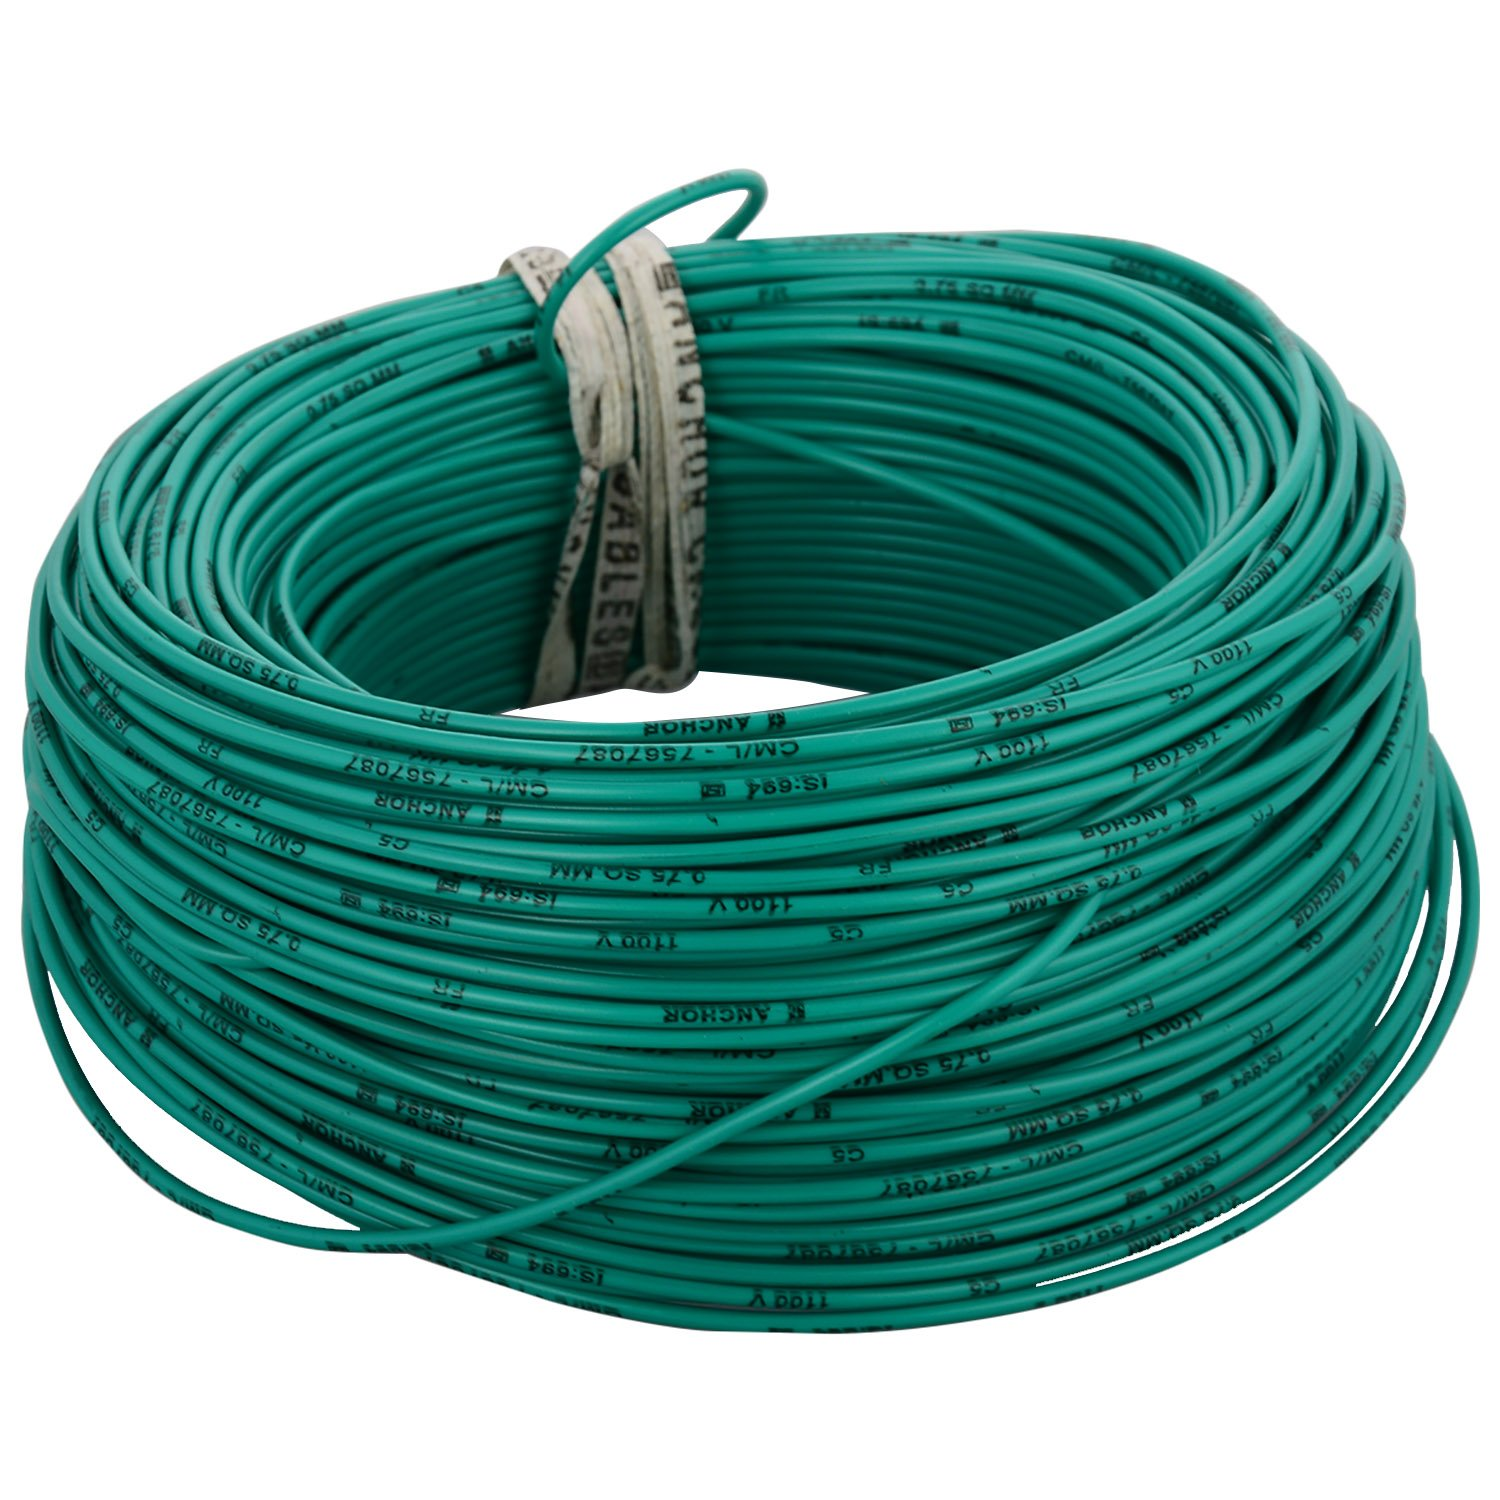 Anchor Insulated Copper PVC Cable 0.75 Sq mm Wire (Green): Amazon.in ...